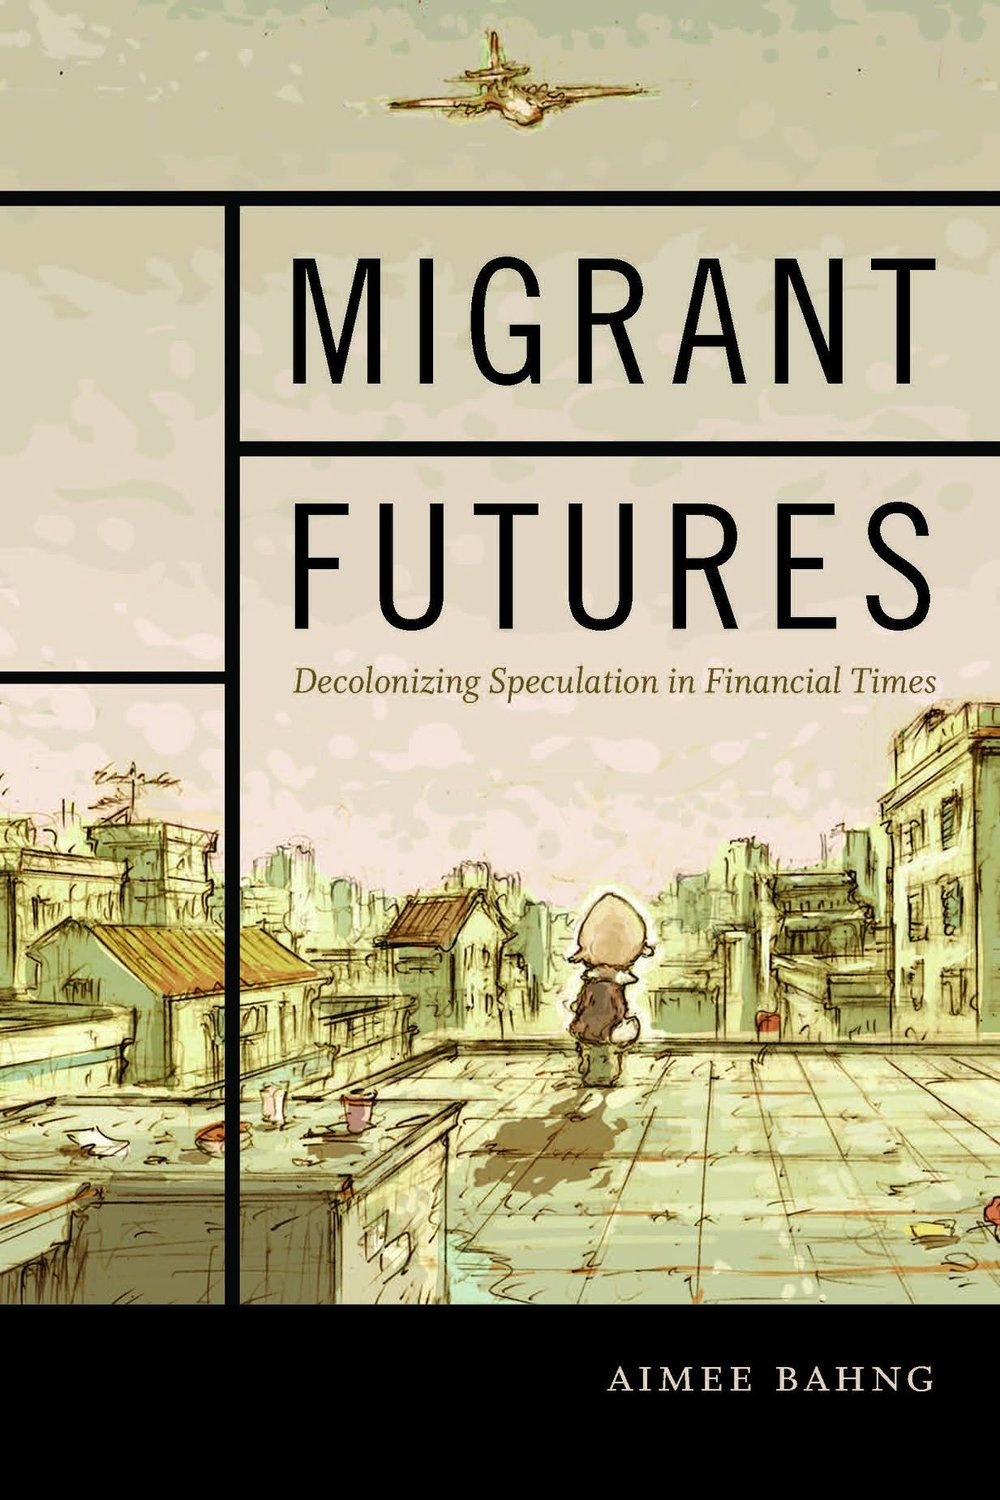 "Editing & Indexing - Aimee Bahng, Migrant Futures: Decolonizing Speculation in Financial Times (Duke University Press, 2018)❦""Writing can bring out demons of all kinds. I deeply appreciate the winning combination of professionalism, light-heartedness, and encouragement Josh brought to our process. His passion for copy editing is stunning and perhaps even inspiring. It helped make the whole process seem less like drudgery. To the writer in her final stages of manuscript preparation, when despair threatens to overwhelm at every moment, Josh brings much needed energy and sparkle to the experience. He's a keen reader with an attention to both the fine details and broader arcs of the project. I wish I had worked with him earlier."